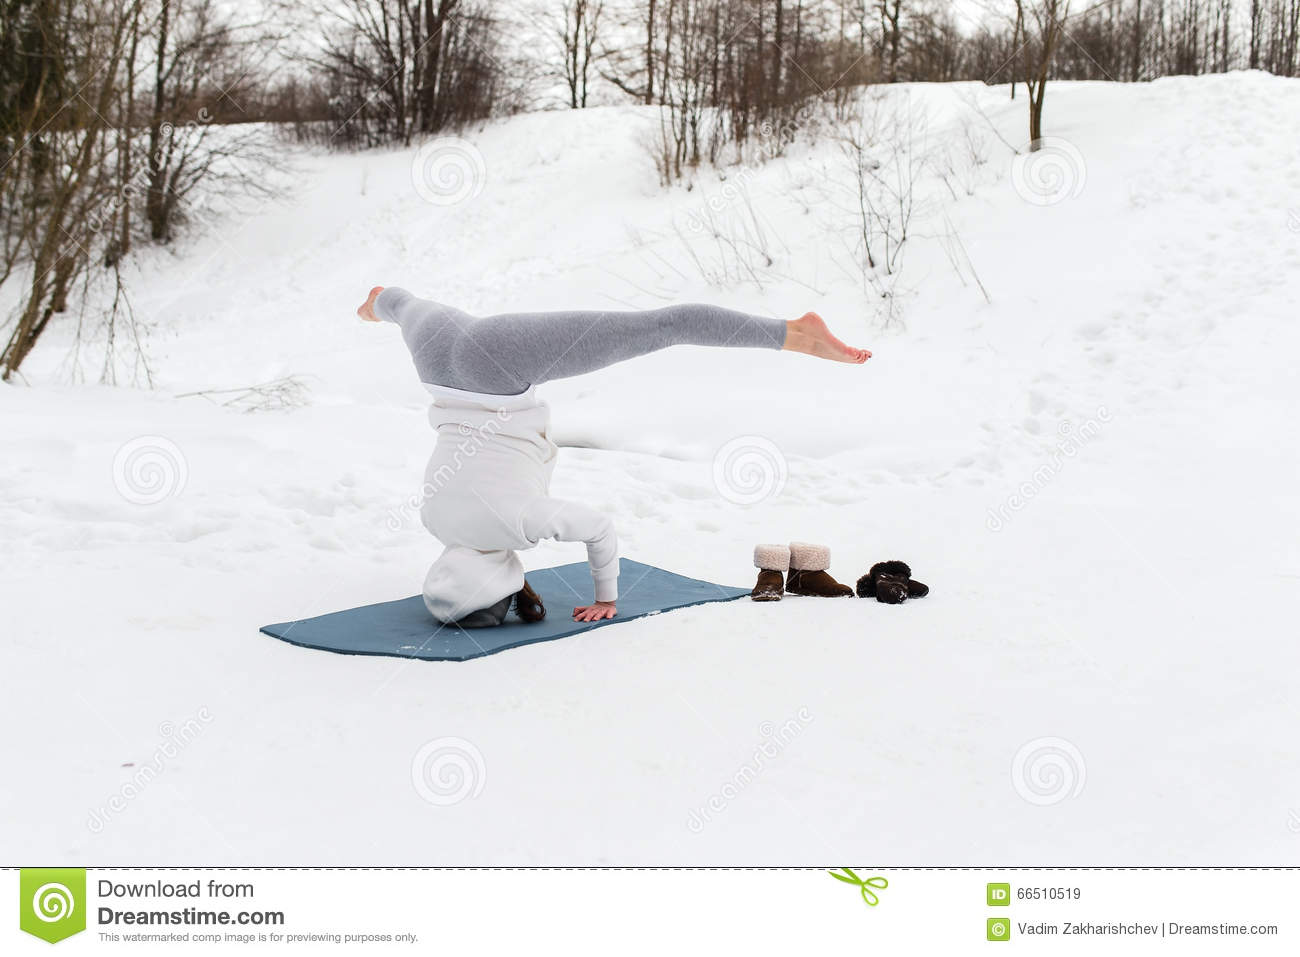 https://thumbs.dreamstime.com/z/winter-yoga-session-beautiful-place-young-athletic-woman-doing-woods-girl-engaged-fitness-park-66510519.jpg